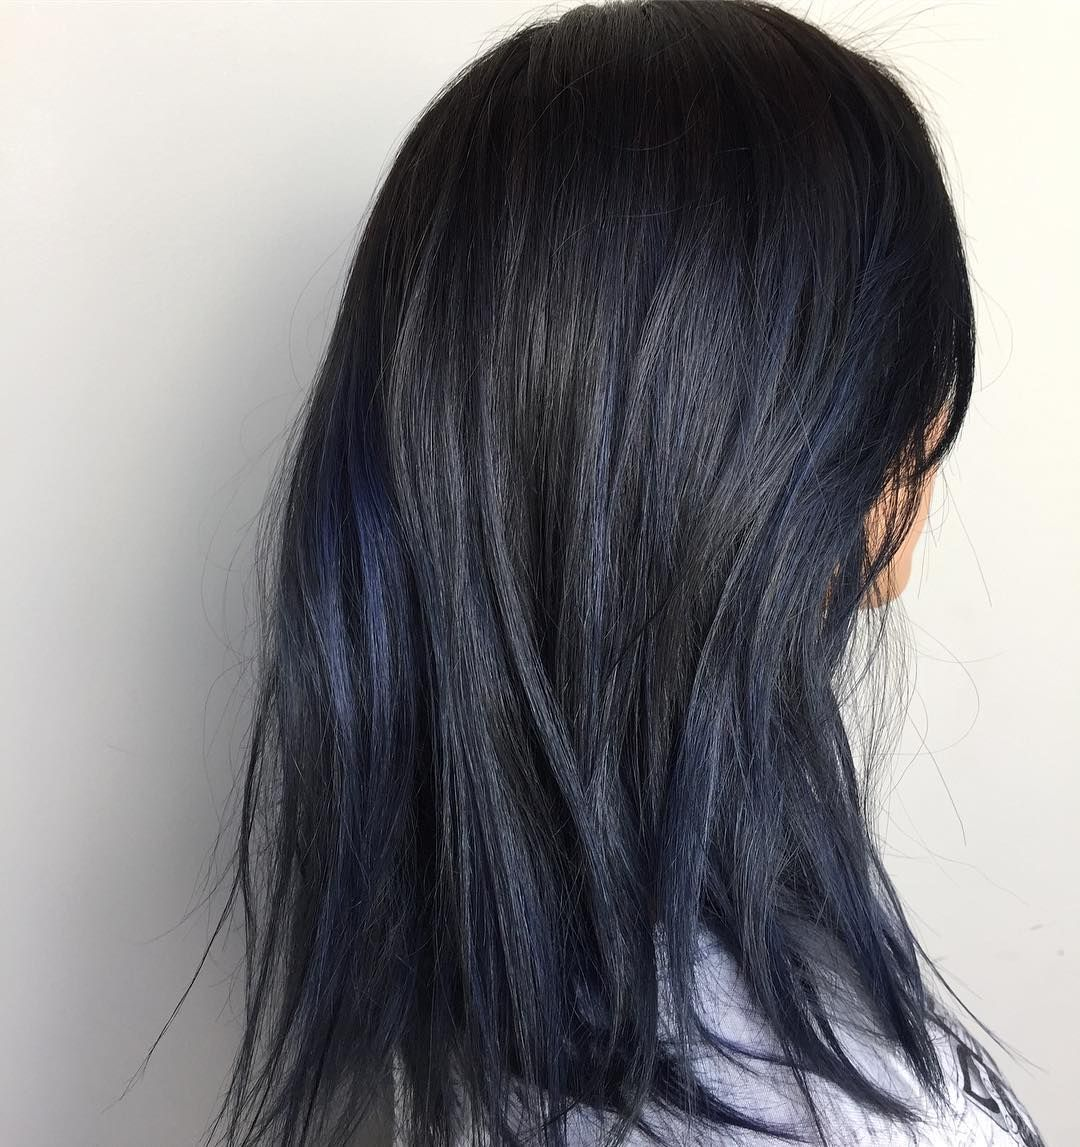 Schwarz Blaue Haare Awesome 65 Phenomenal Dark Hair With Highlights Flattering